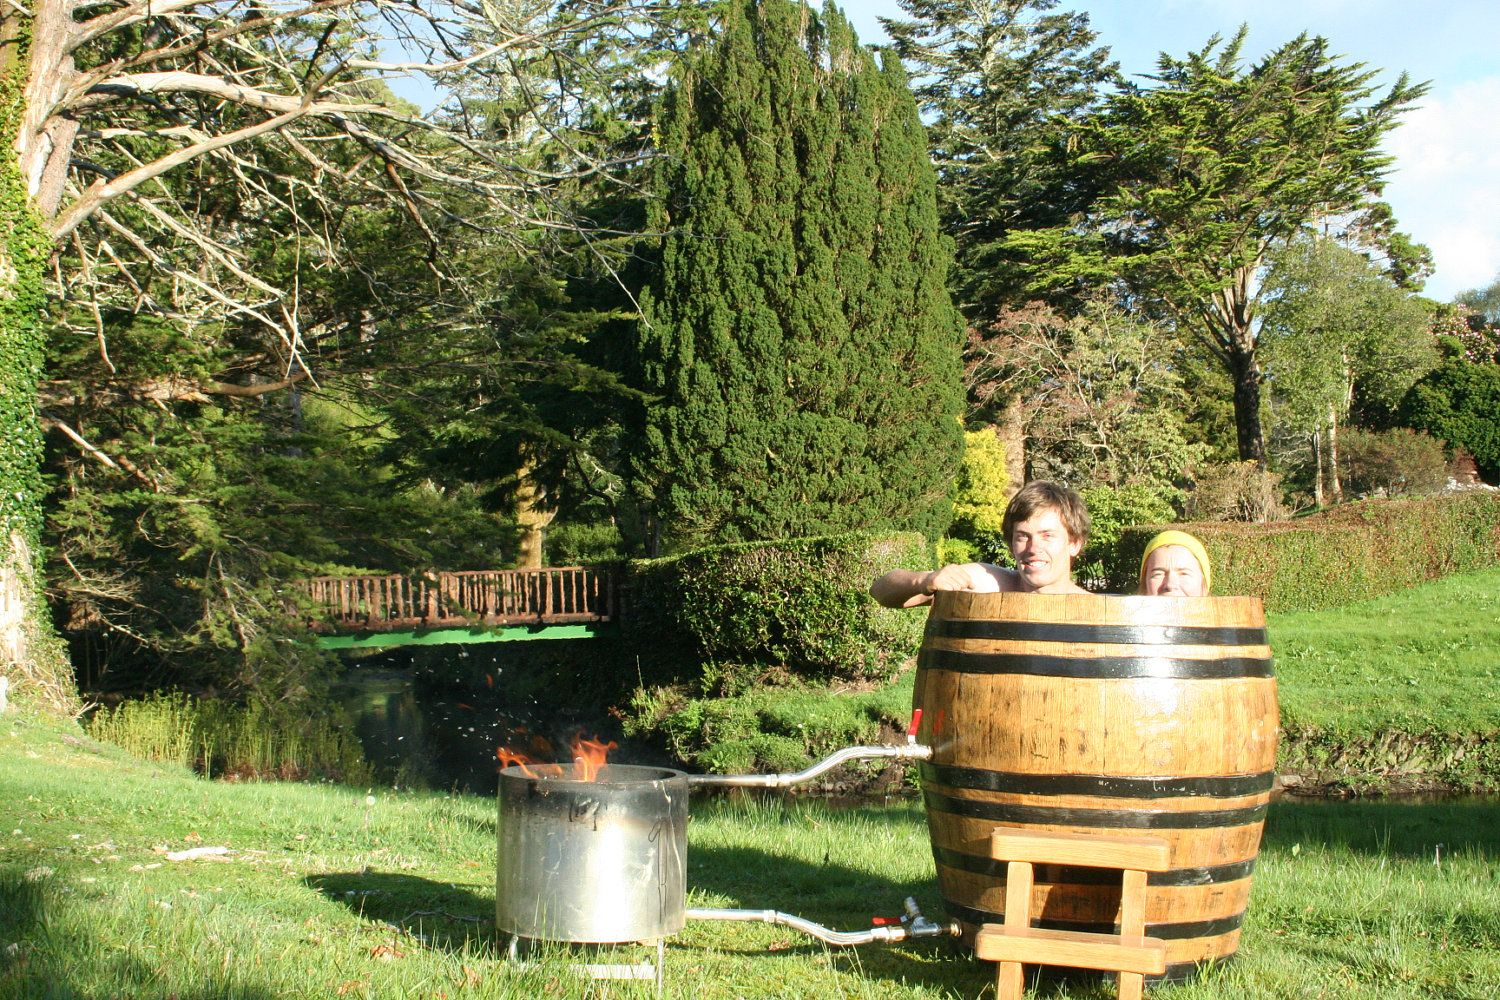 Wood Fired Whiskey Barrel Hot Tub 3 500 00 Via Etsy Whisky